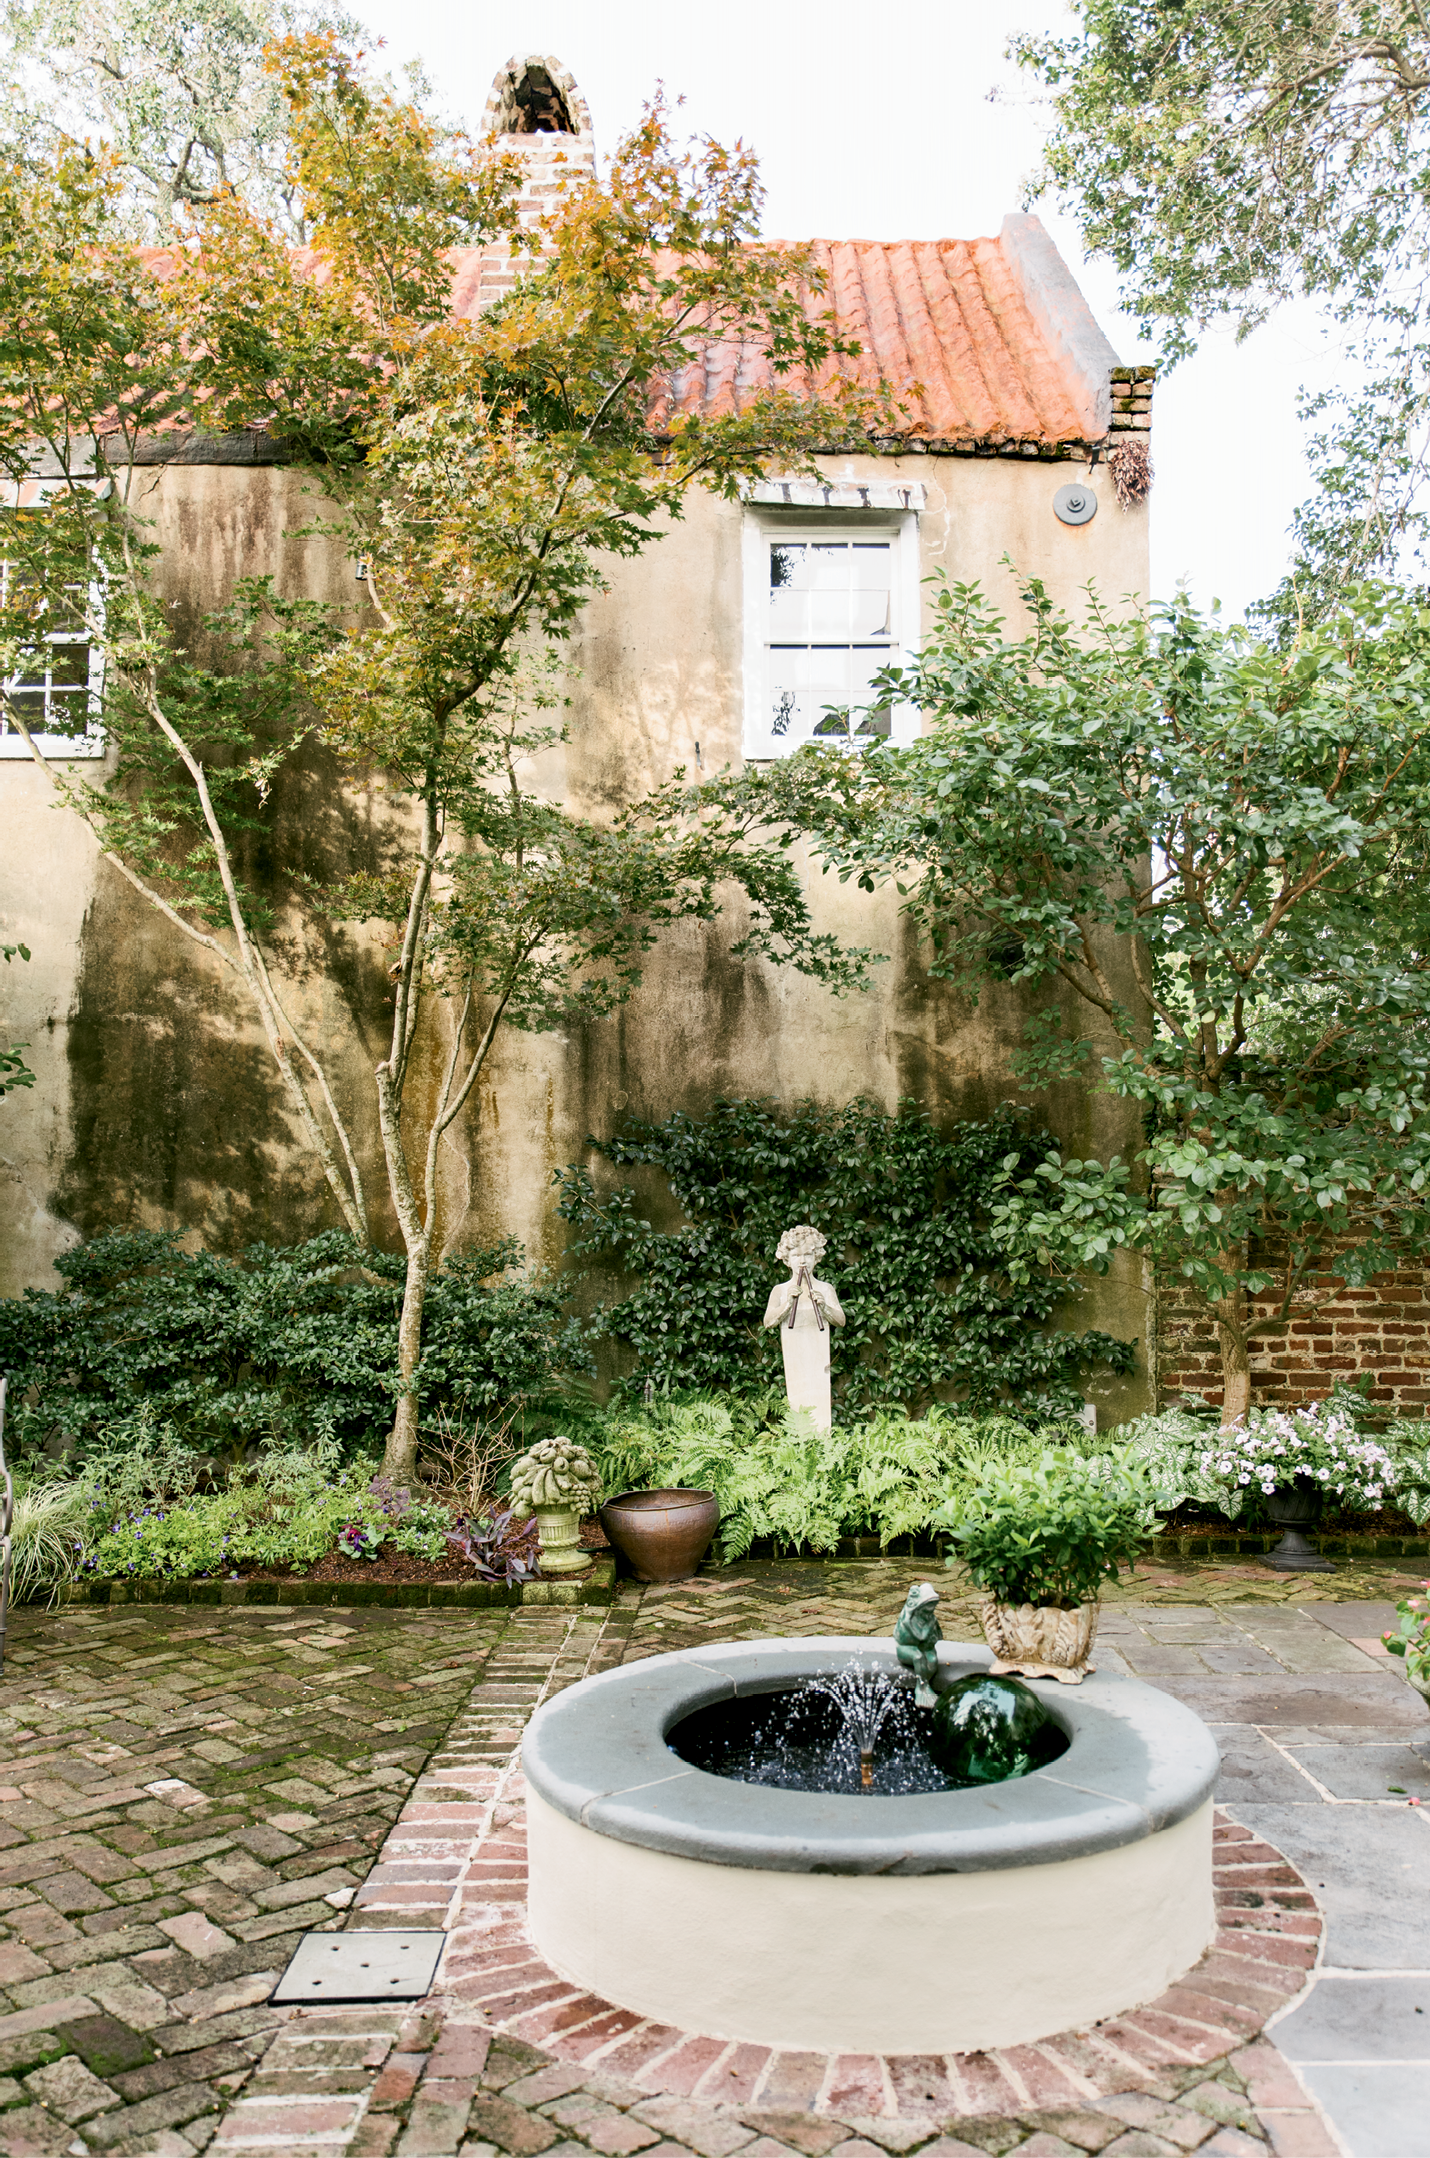 A previous owner filled in this fountain, which anchors the rear courtyard. Monica had it restored and rebuilt, returning the space's signature water feature.